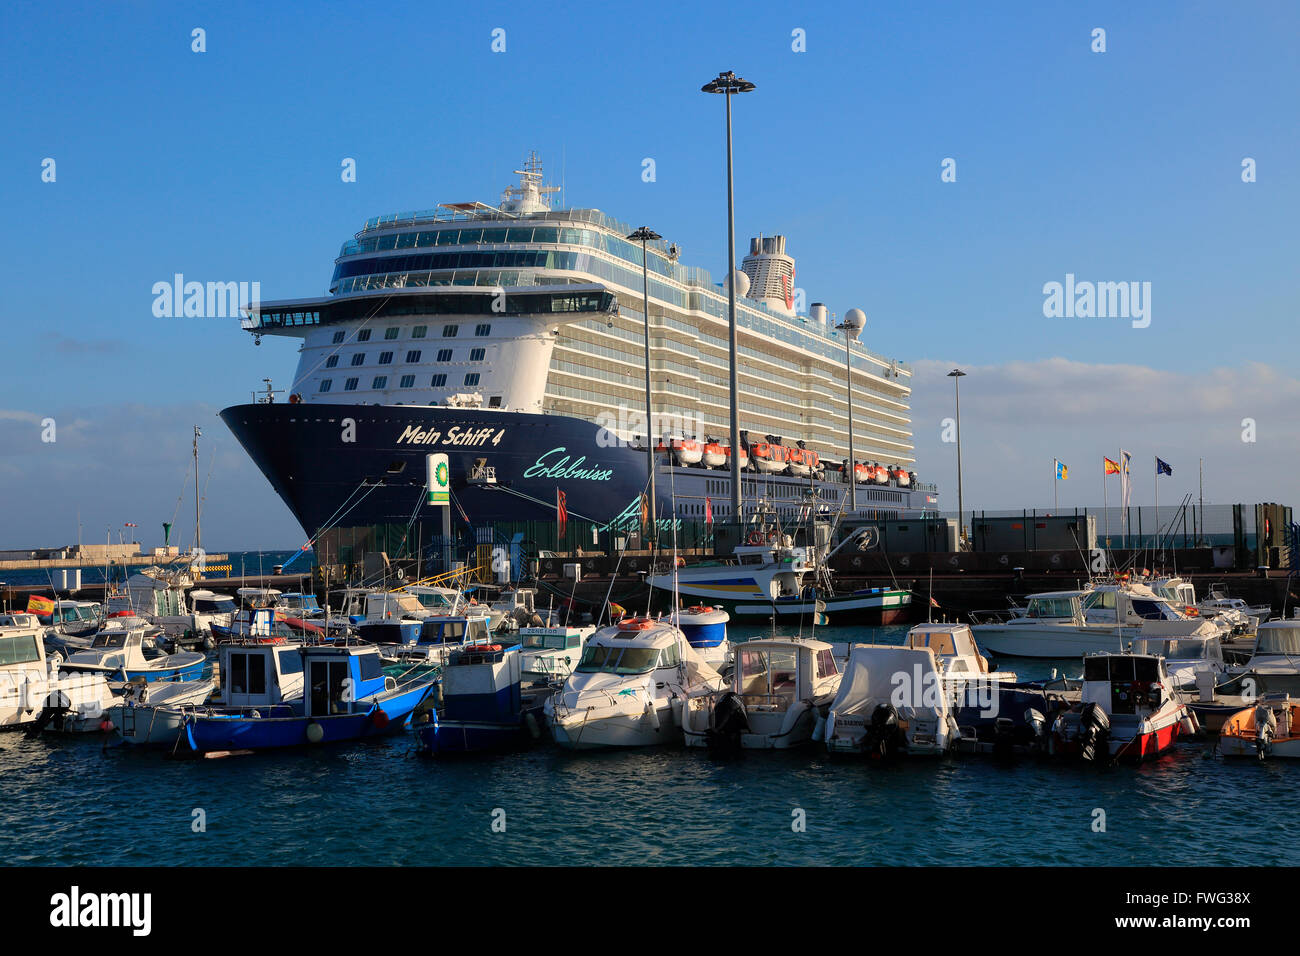 Large german cruise ship mein schiff 4 39 at puerto del rosario stock photo 101772074 alamy - Jm puerto del rosario ...